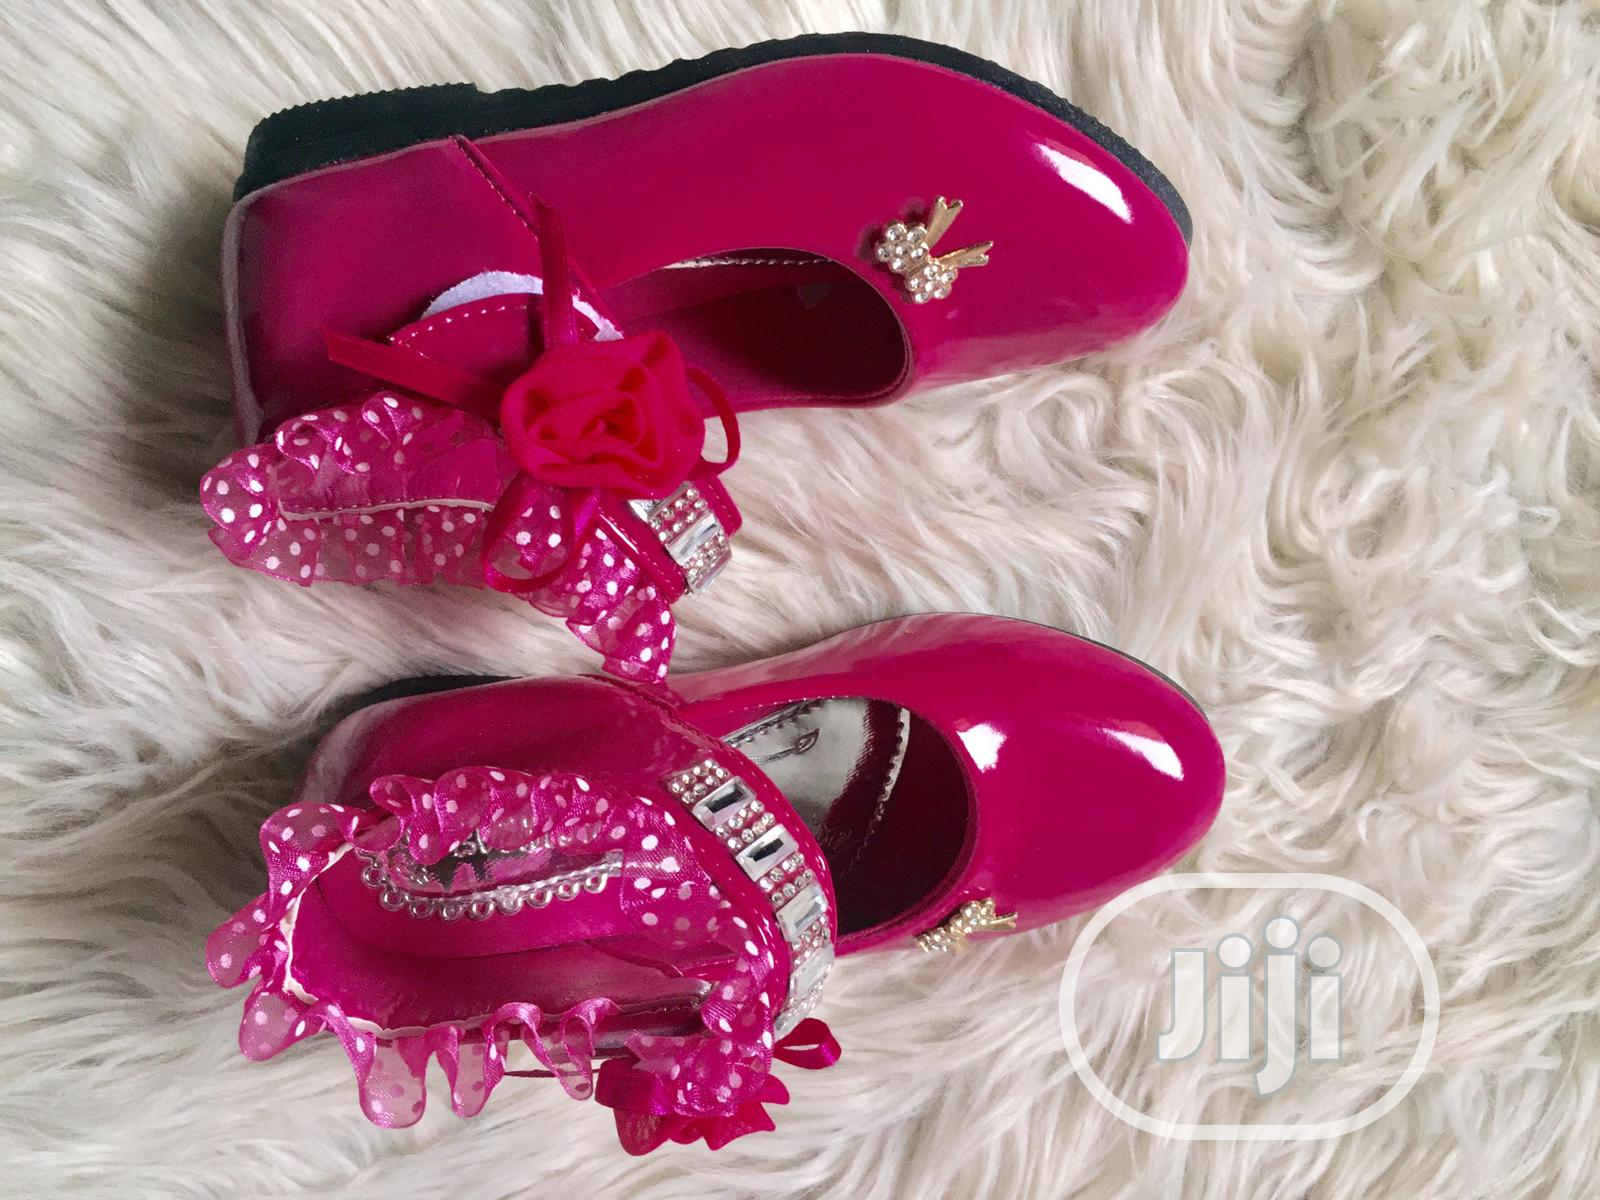 Archive: Glossy Flat Shoes